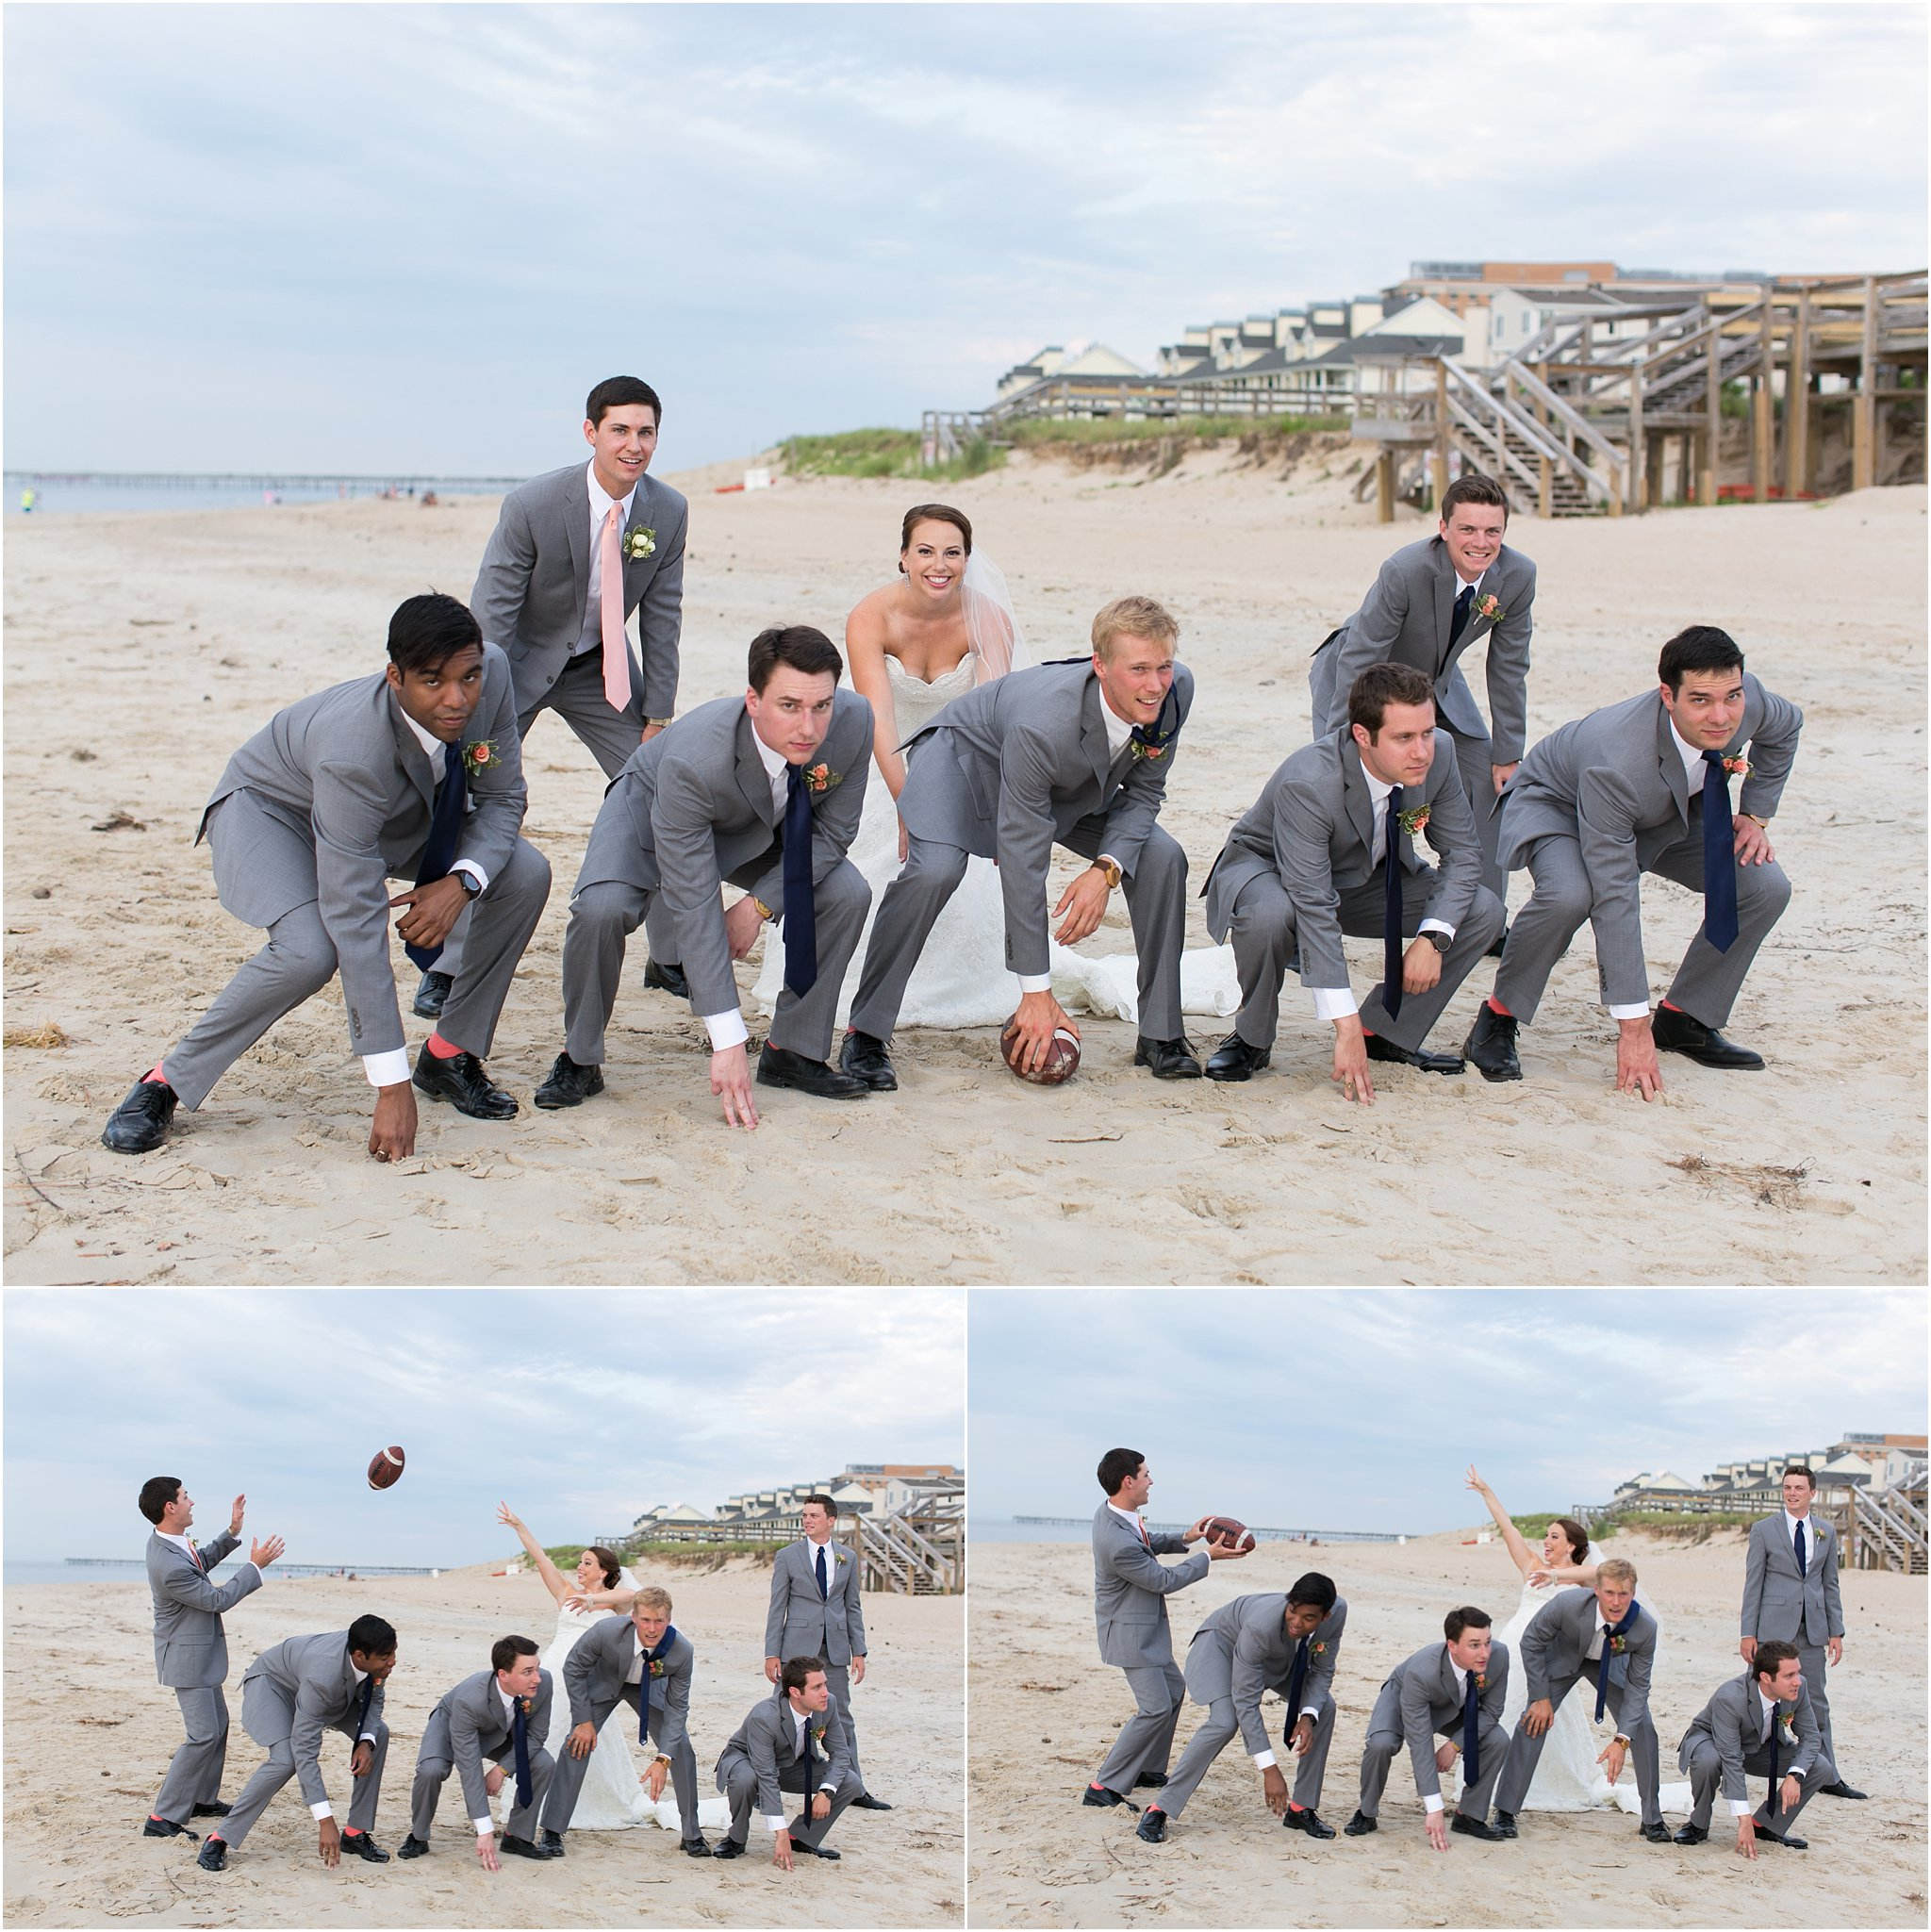 jessica_ryan_photography_wedding_photography_virginiabeach_virginia_candid_authentic_wedding_portraits_marina_shores_yacht_club_chesapeake_bay_1864